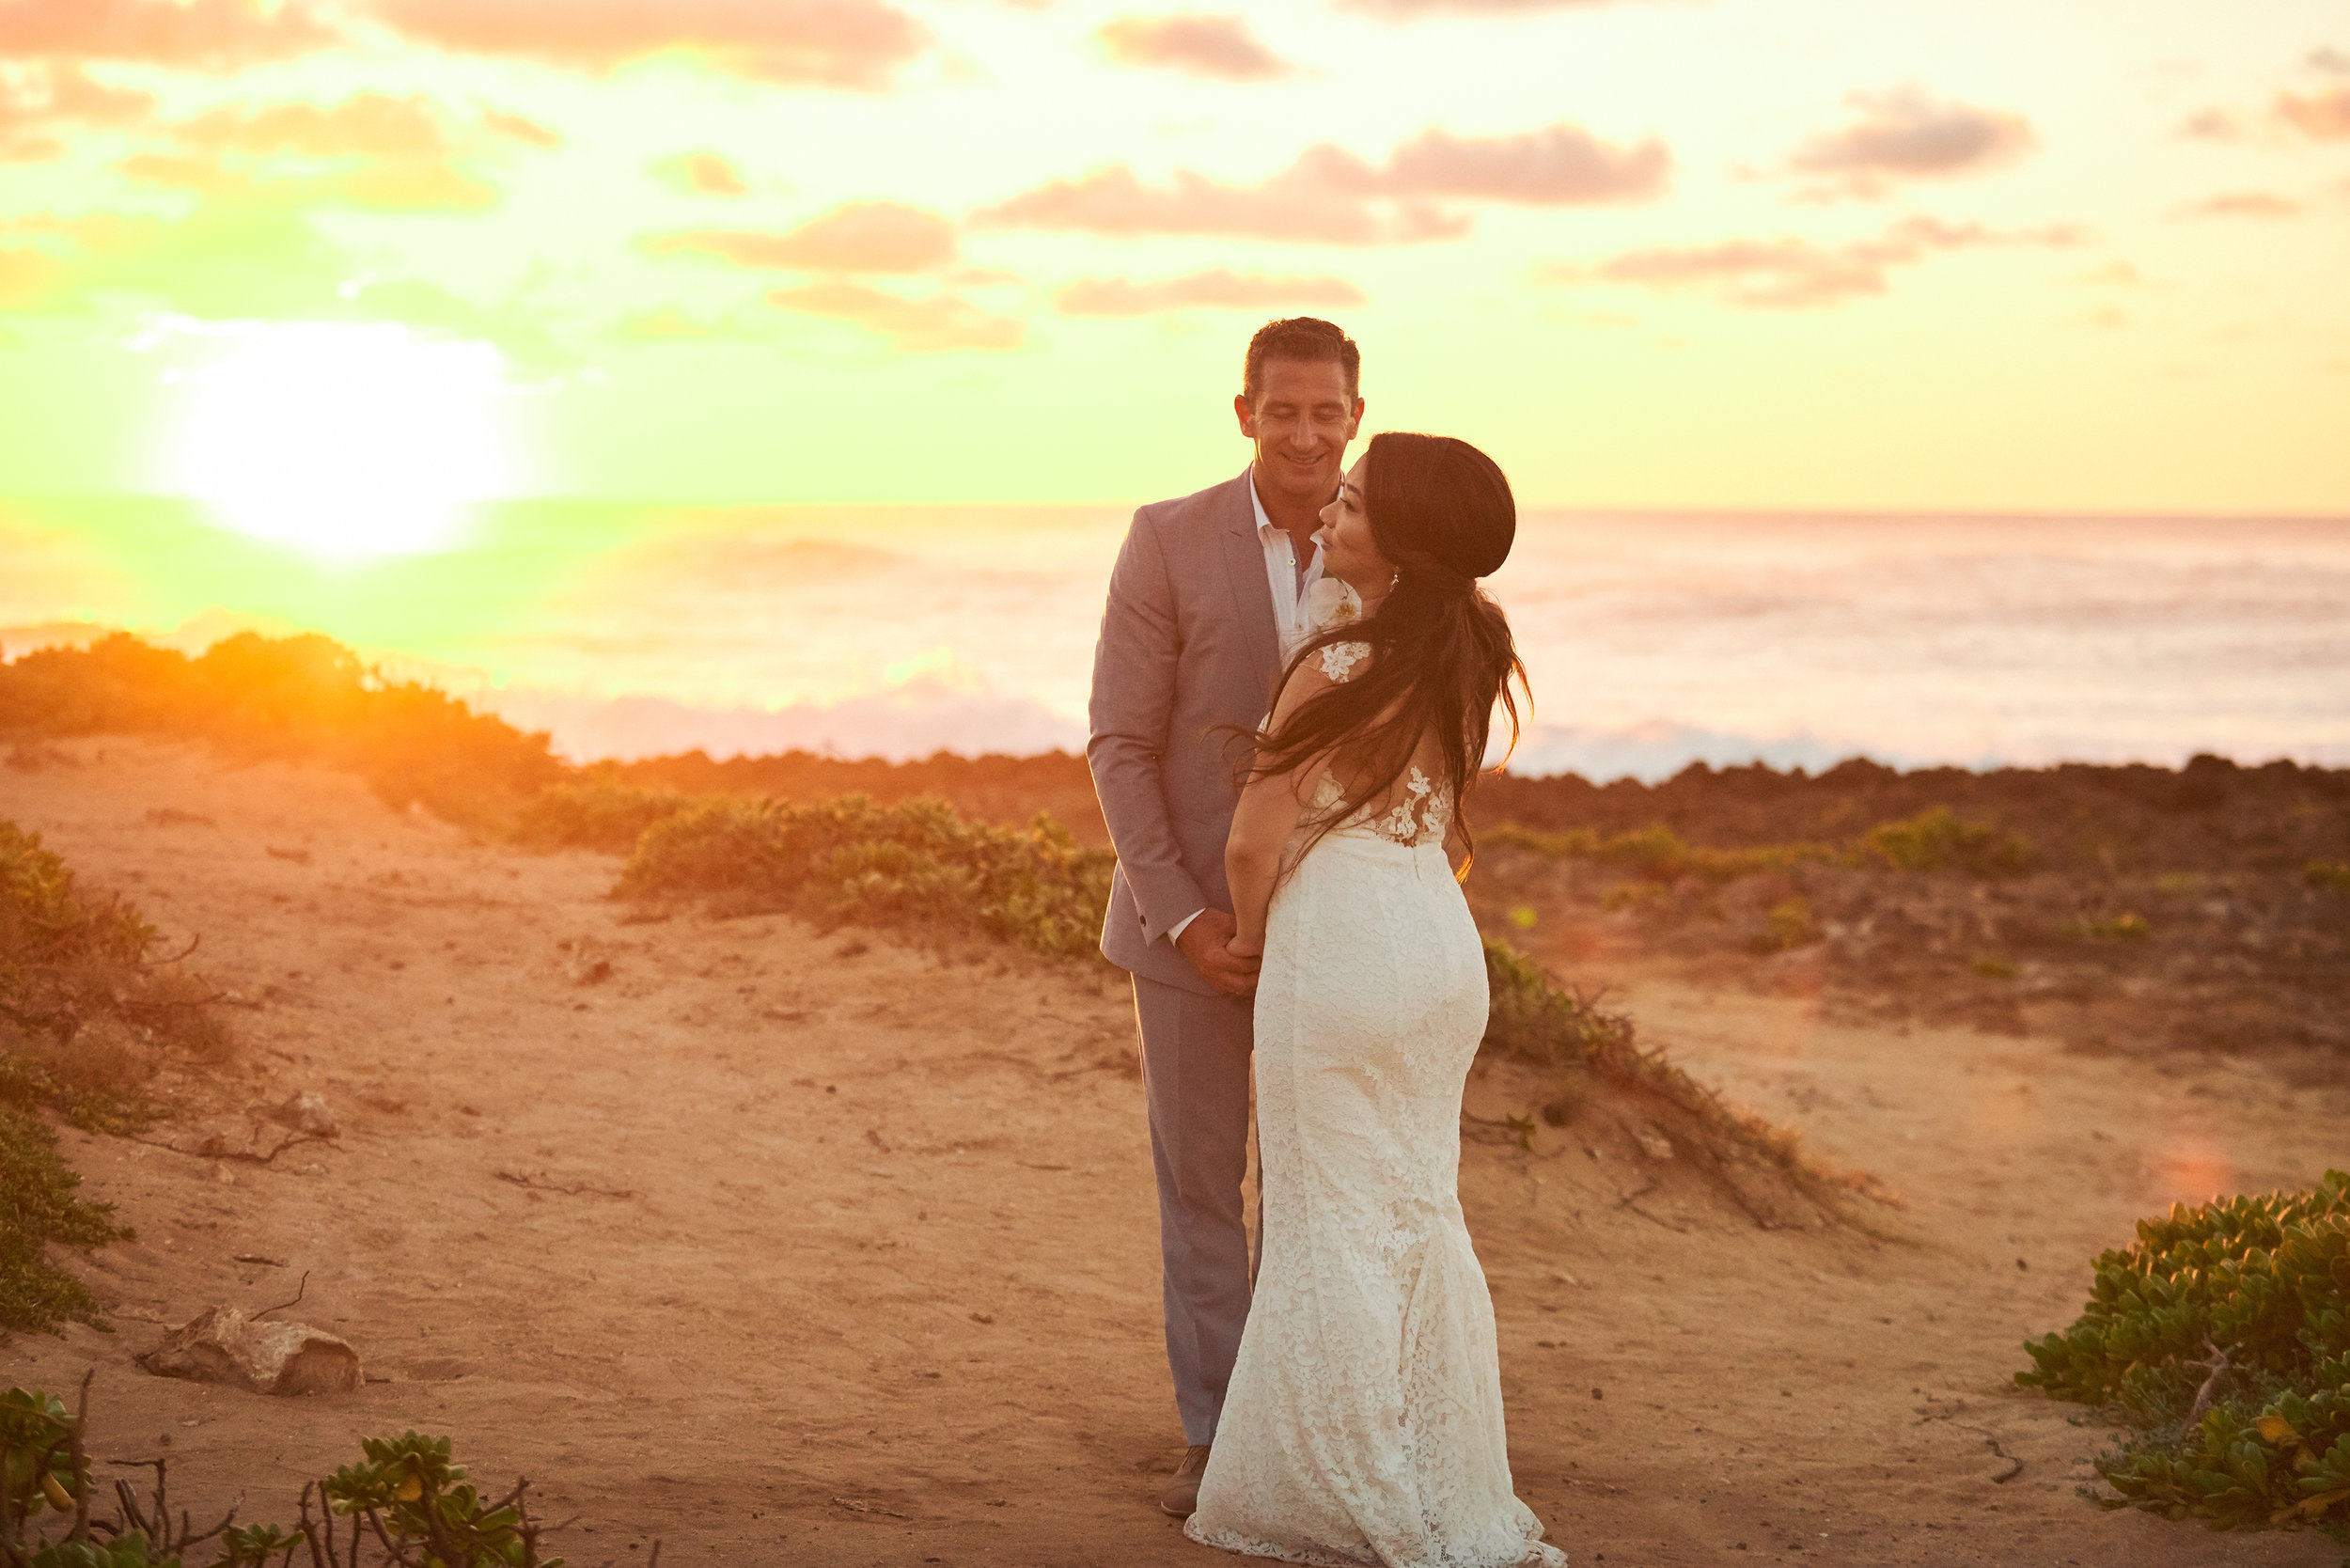 turtle bay resort wedding north shore oahu stephen ludwig photography- terry and isabel (33).jpg